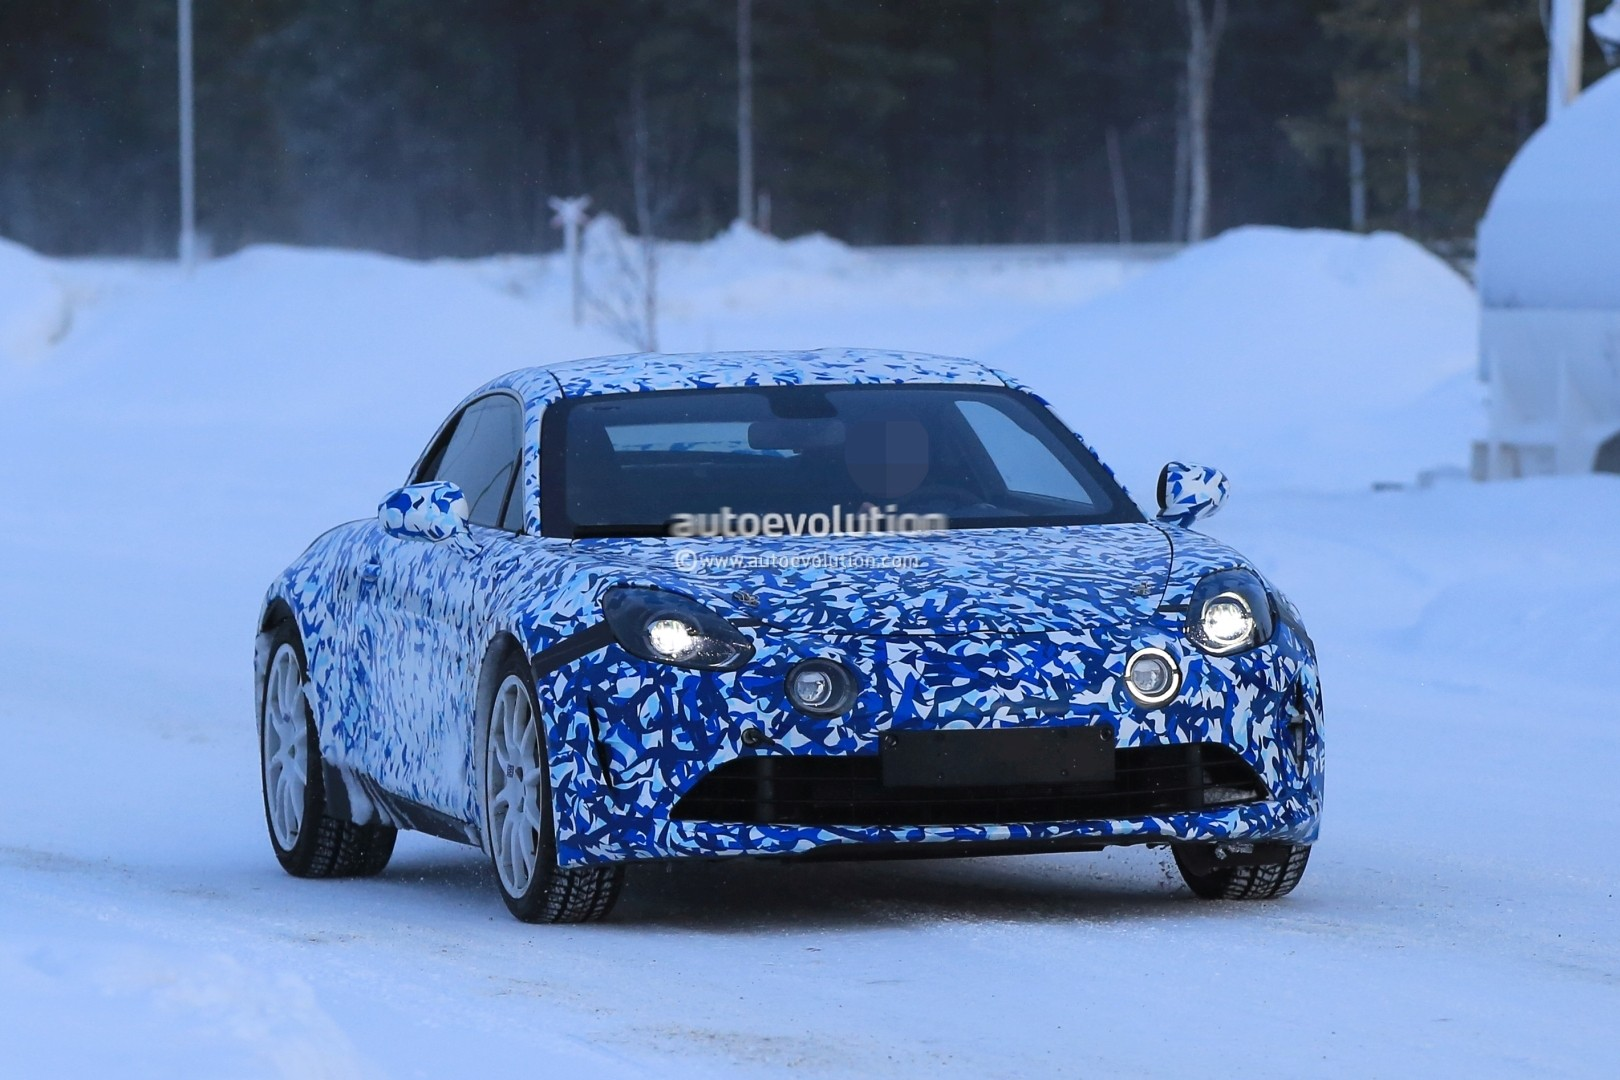 Alpine Sports Car Will Get Flat Floor And Rear Diffuser For Max Aero